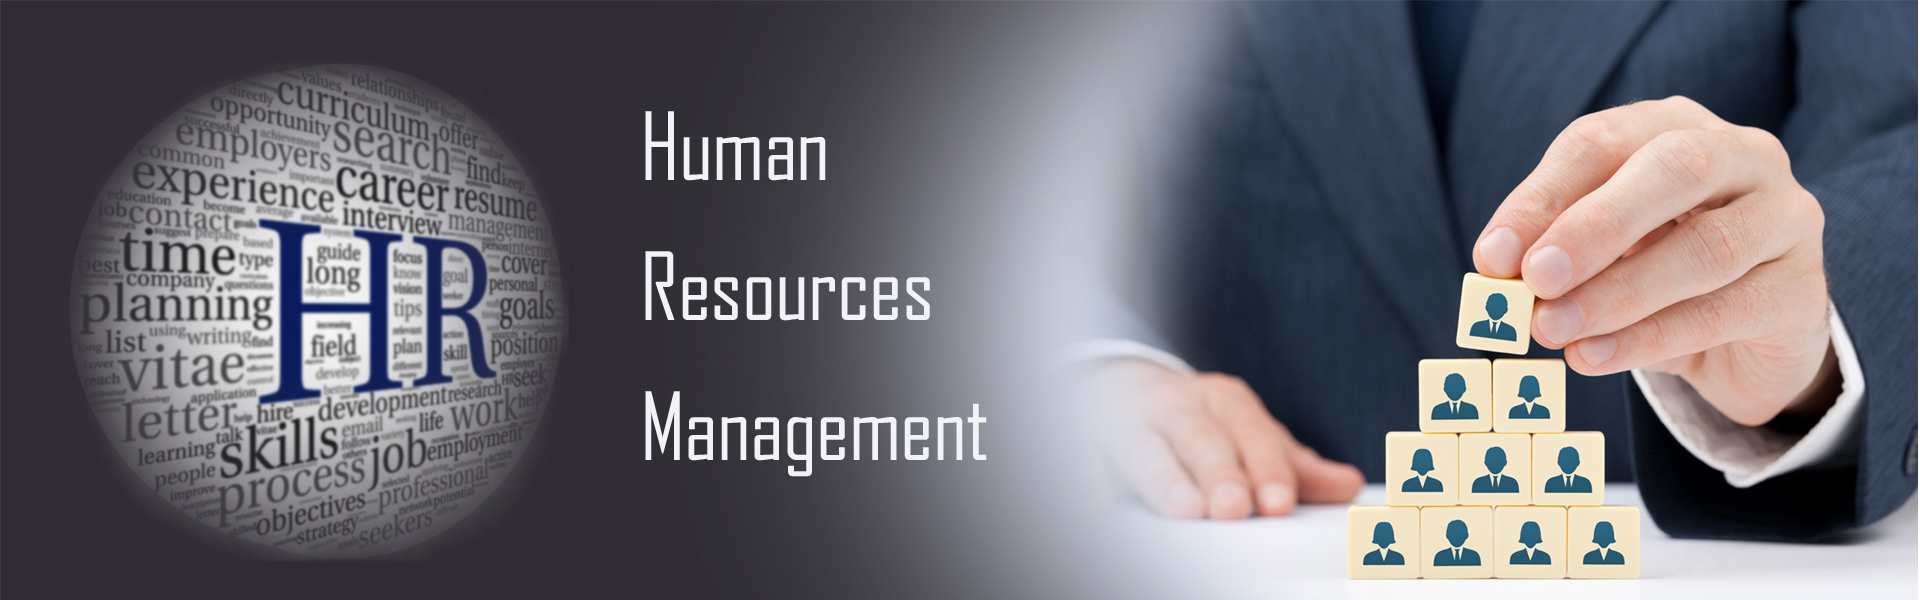 Unit 18 Human Resource Management Assignment Hilton Hotel Stratford - Assignment Help